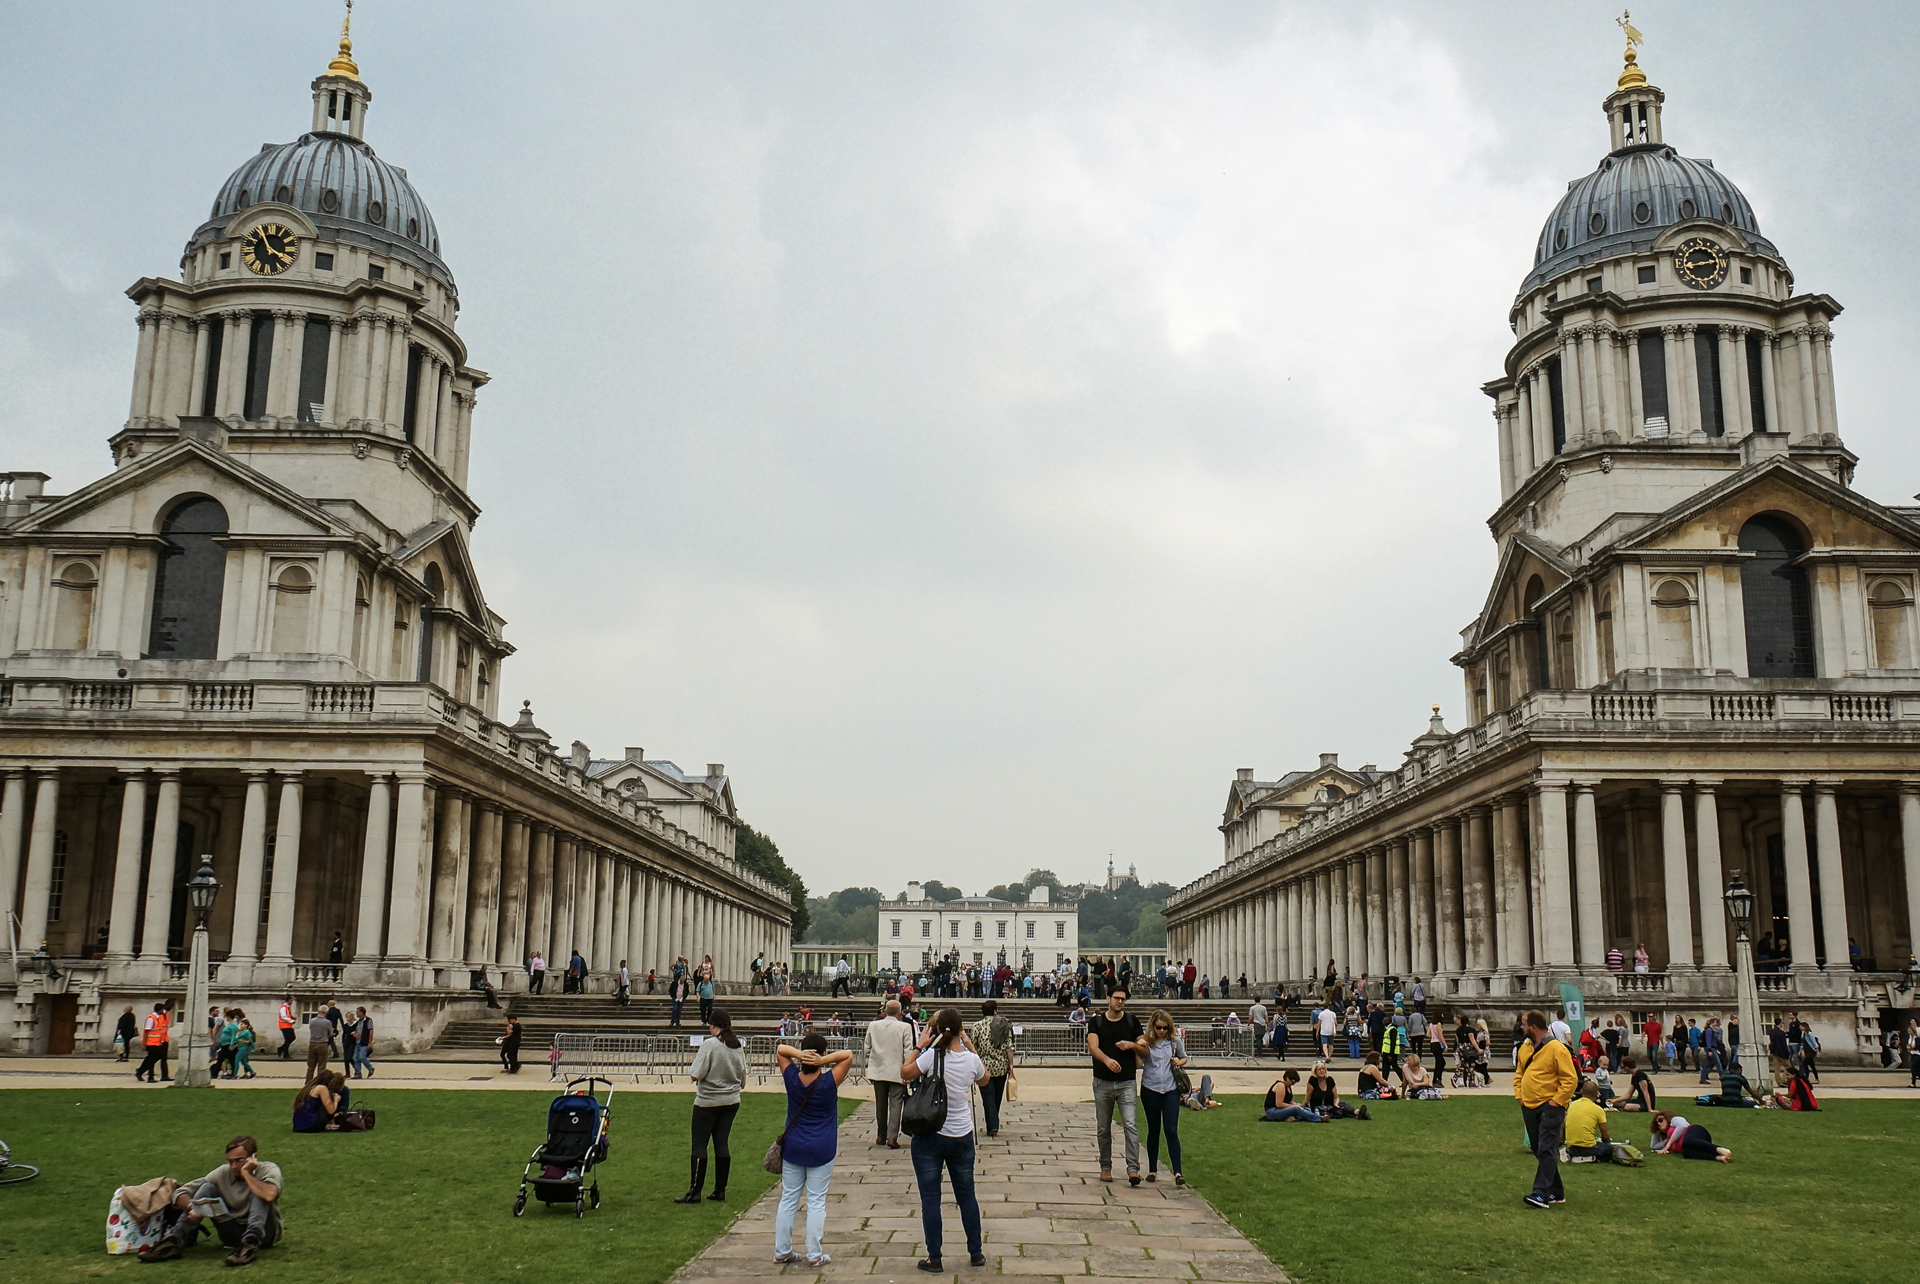 london city tour, tour and sightseeing, sight tour